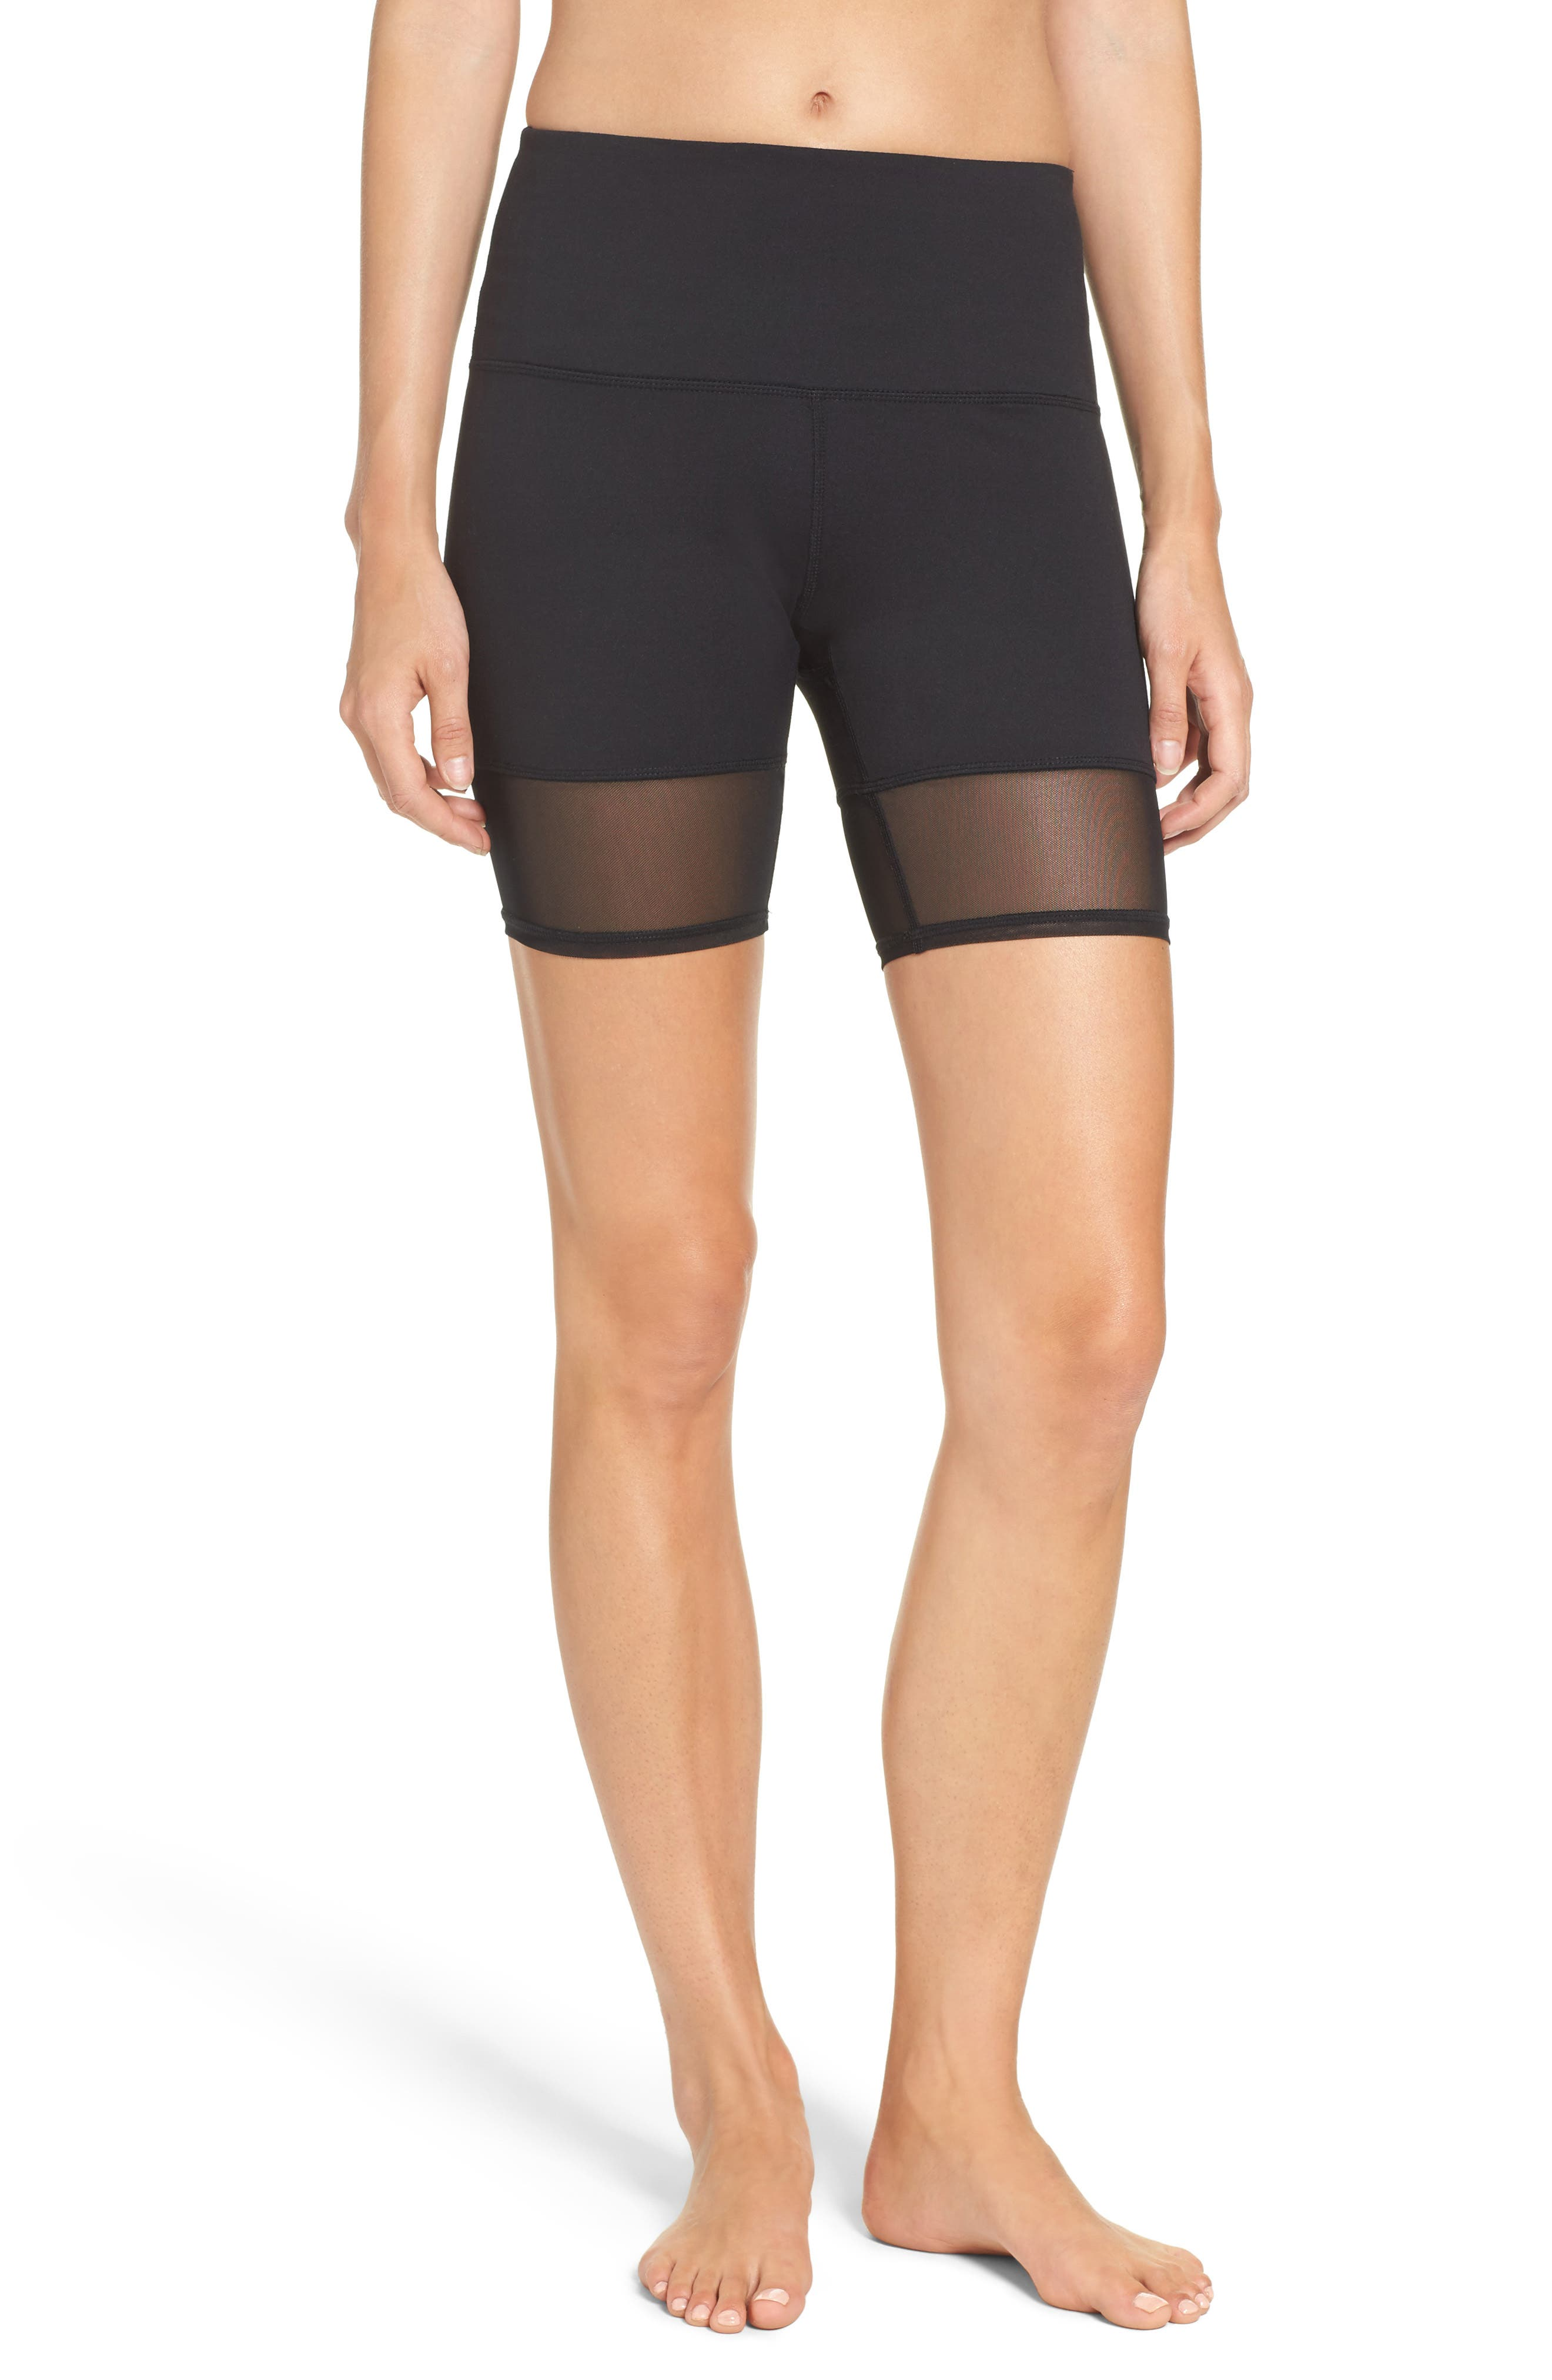 Mia High Waist Mesh Bike Shorts,                             Main thumbnail 1, color,                             001